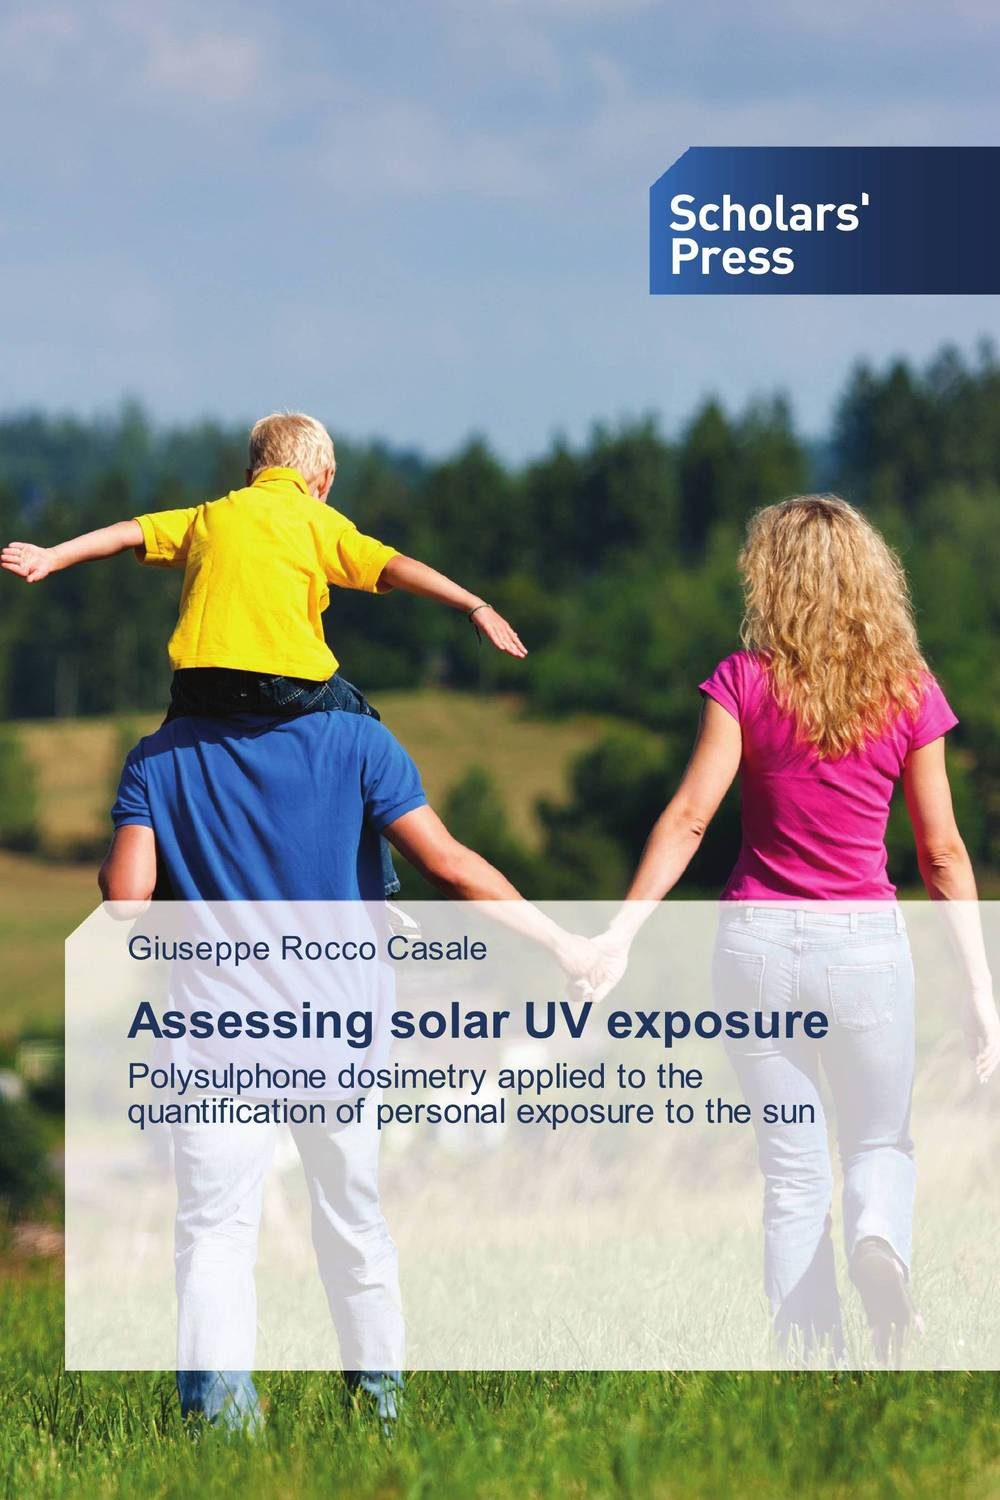 Assessing solar UV exposure latitudes